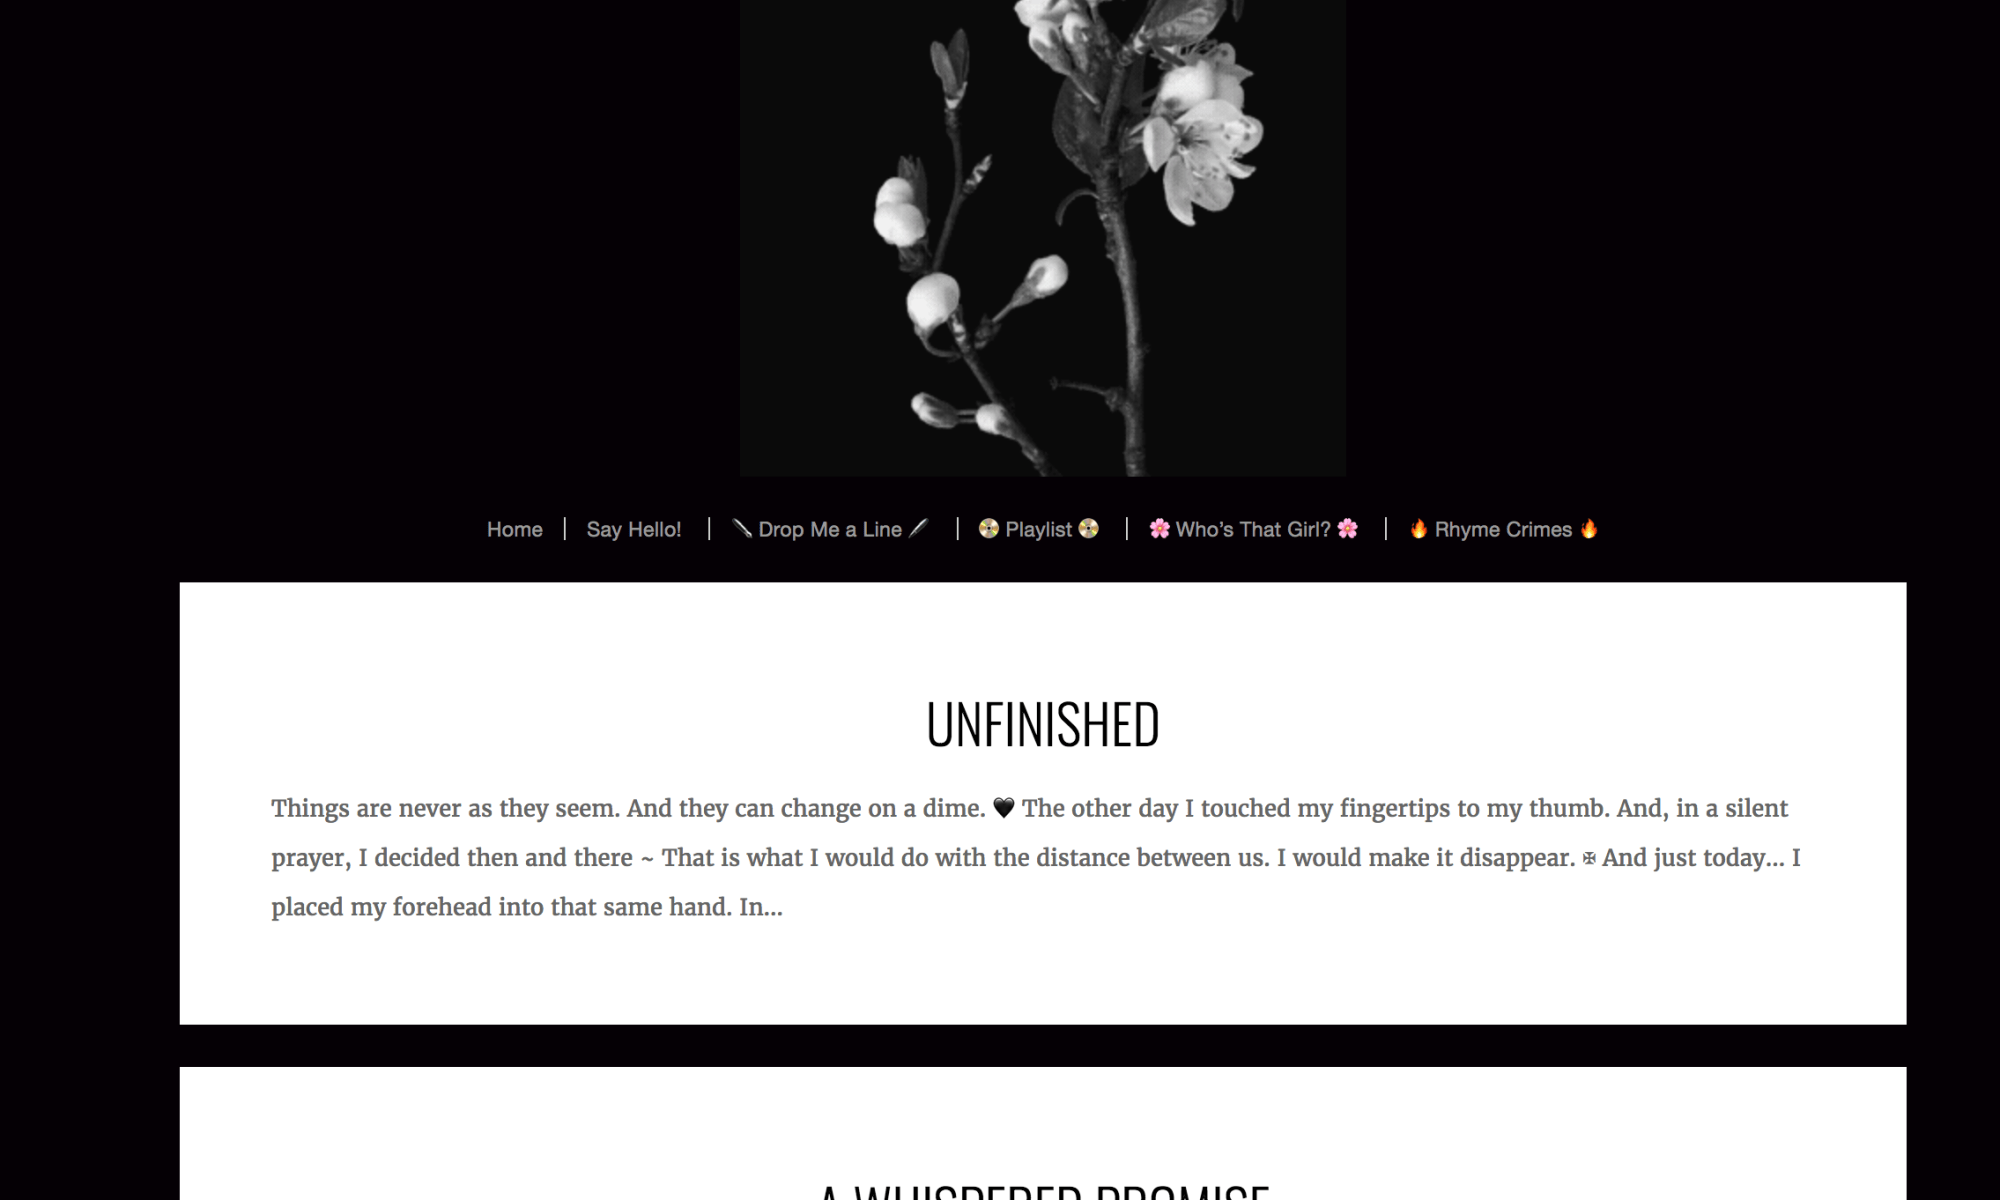 A screenshot from JM's site. I've used this without asking JM. If you click on the image you will be taken to her rhymes page. Shout out just me Gary Lum